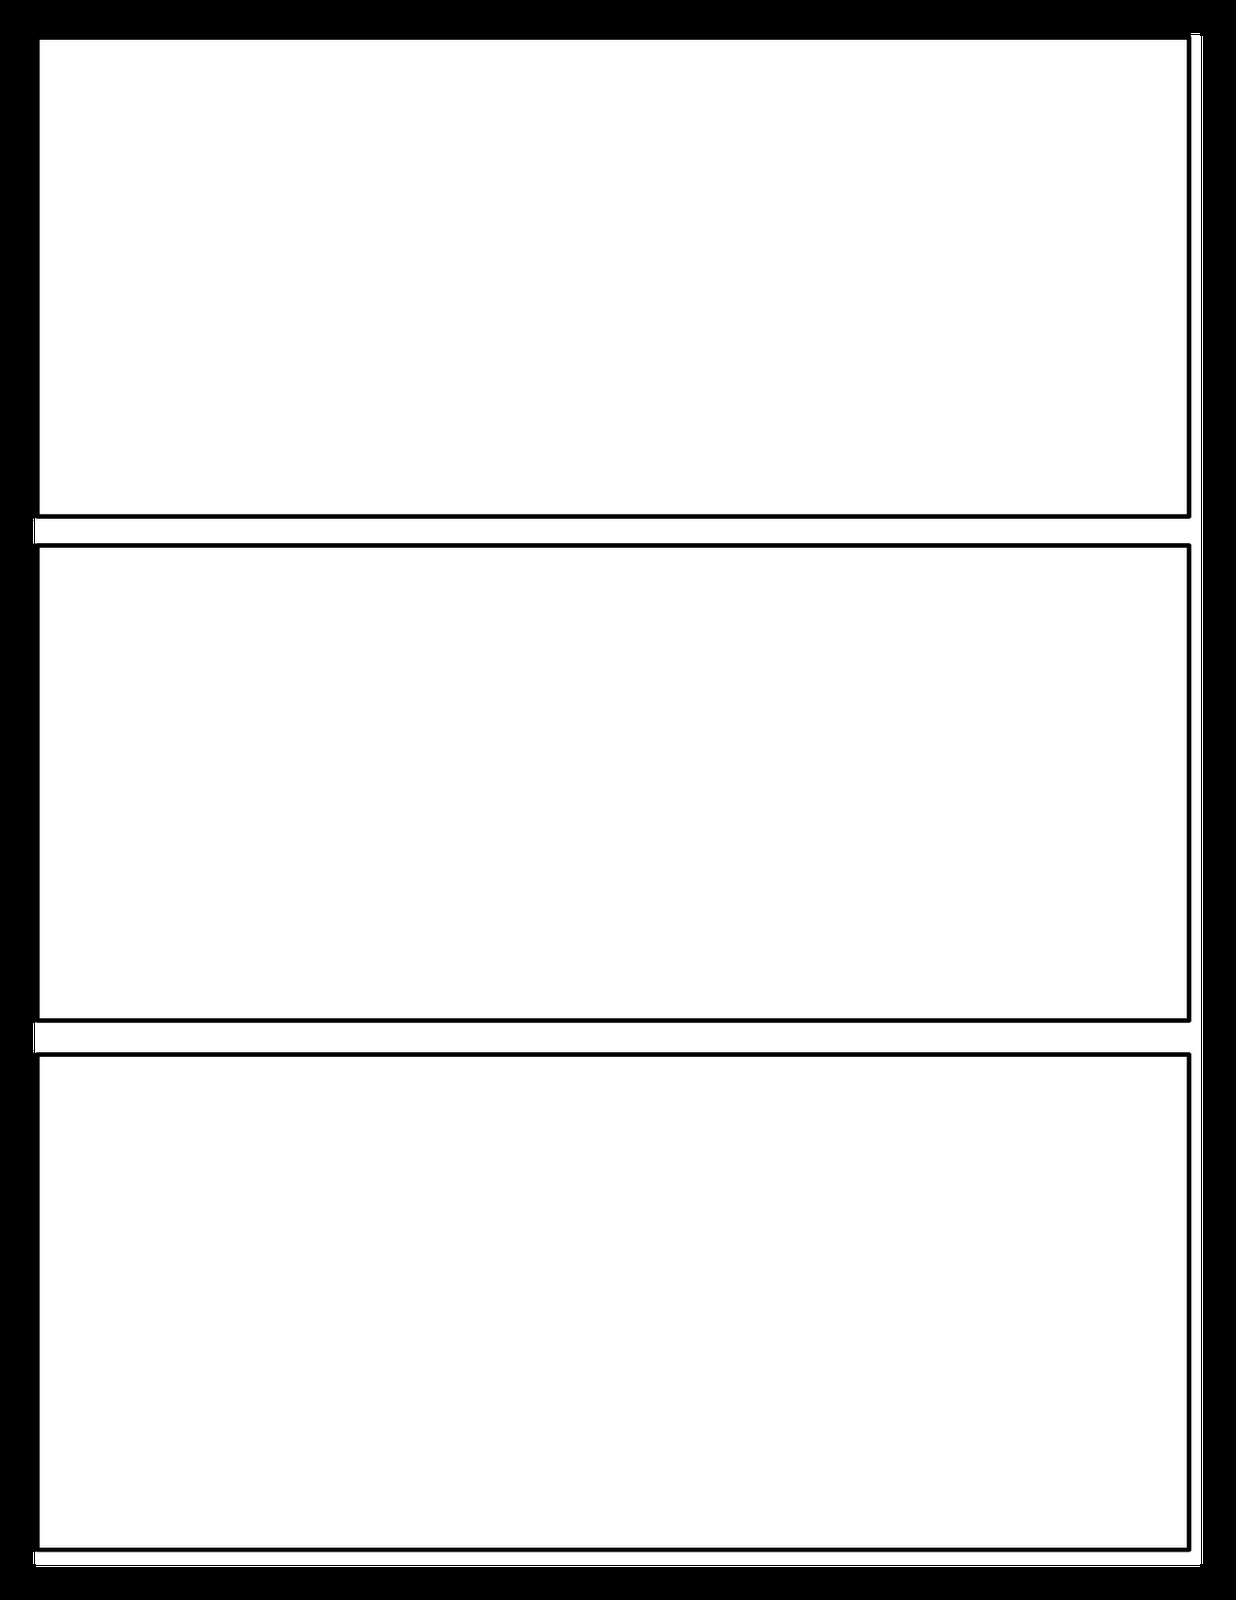 Comic Book Page Template Mrs orman S Classroom Fering Choices for Your Readers